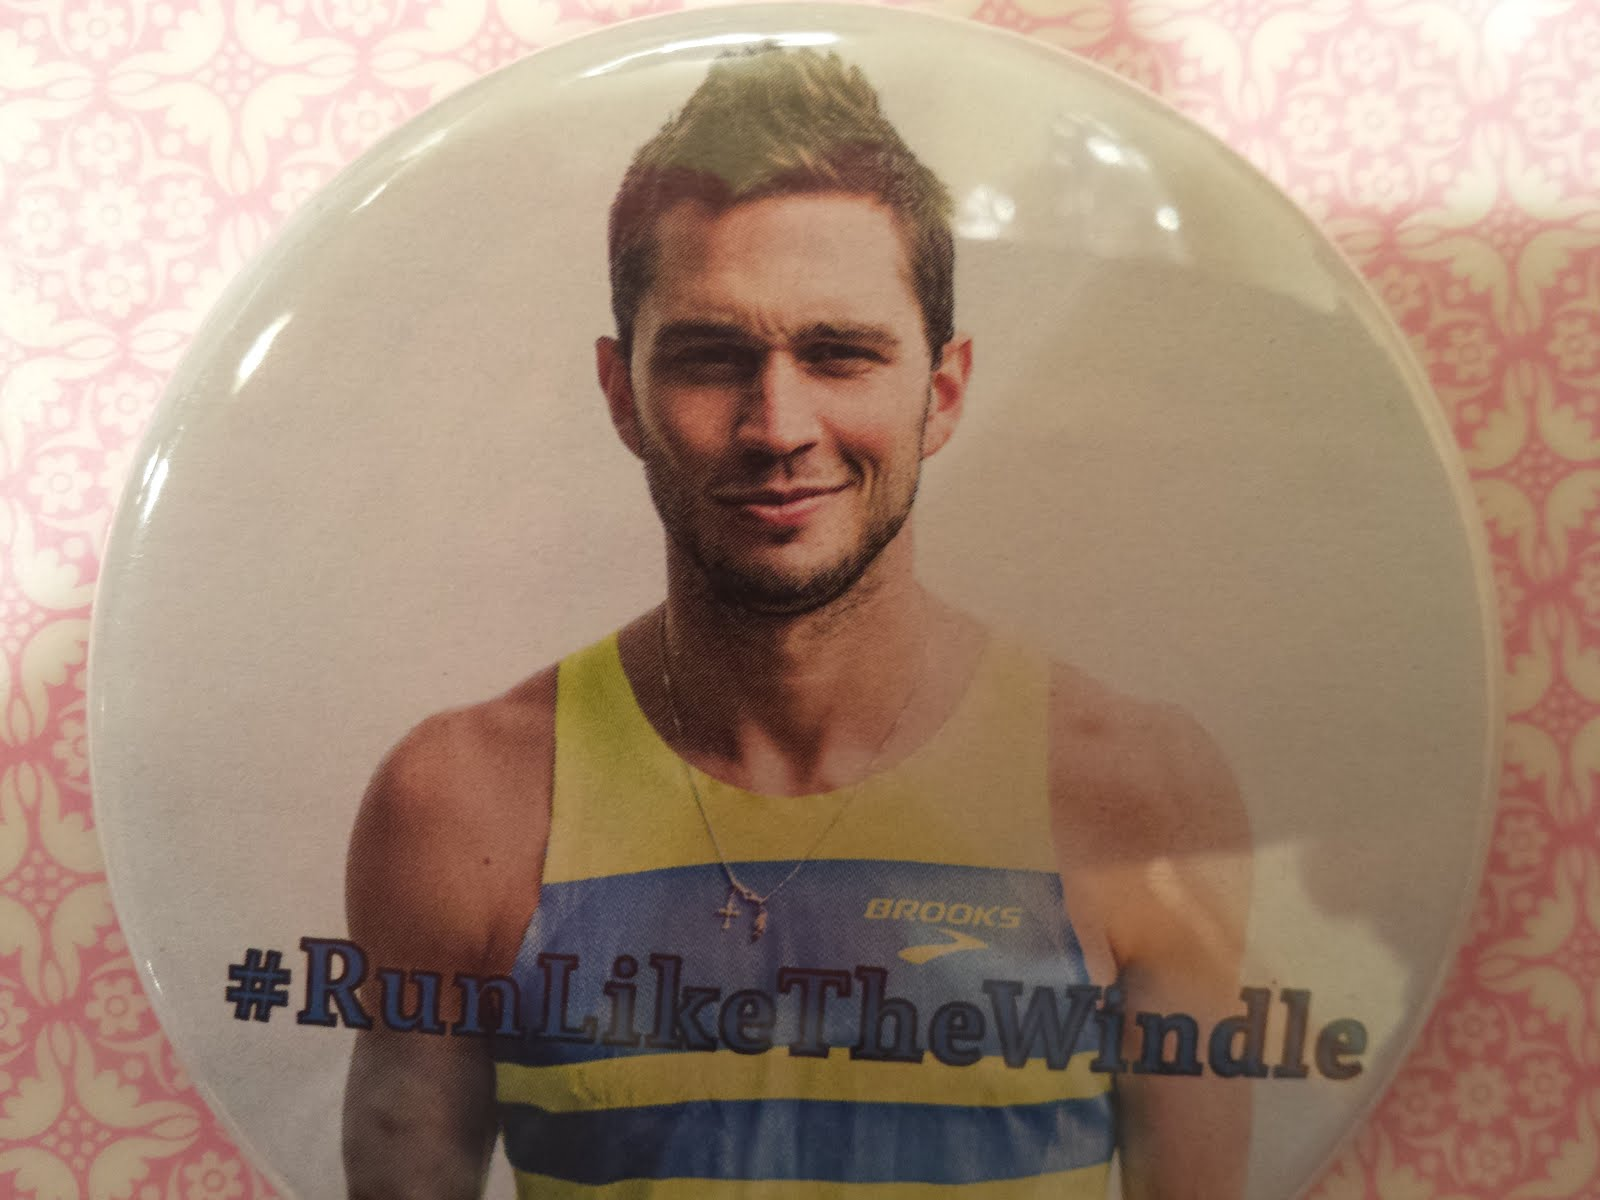 #RunLikeTheWindle button - one of the best collectibles from London's World Championships